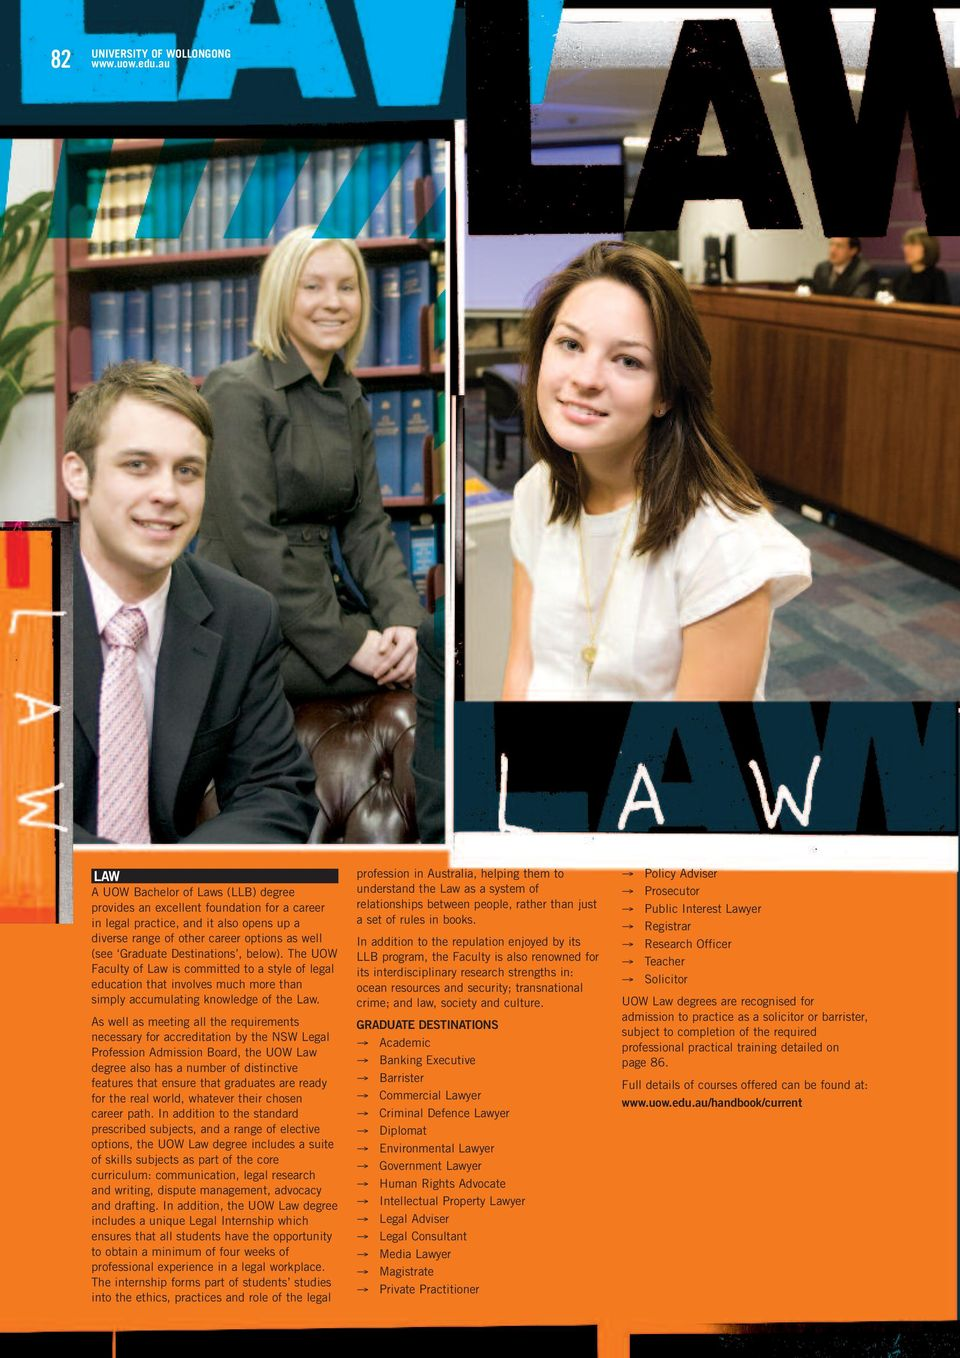 As well as meeting all the requirements necessary for accreditation by the NSW Legal Profession Admission Board, the UOW Law degree also has a number of distinctive features that ensure that